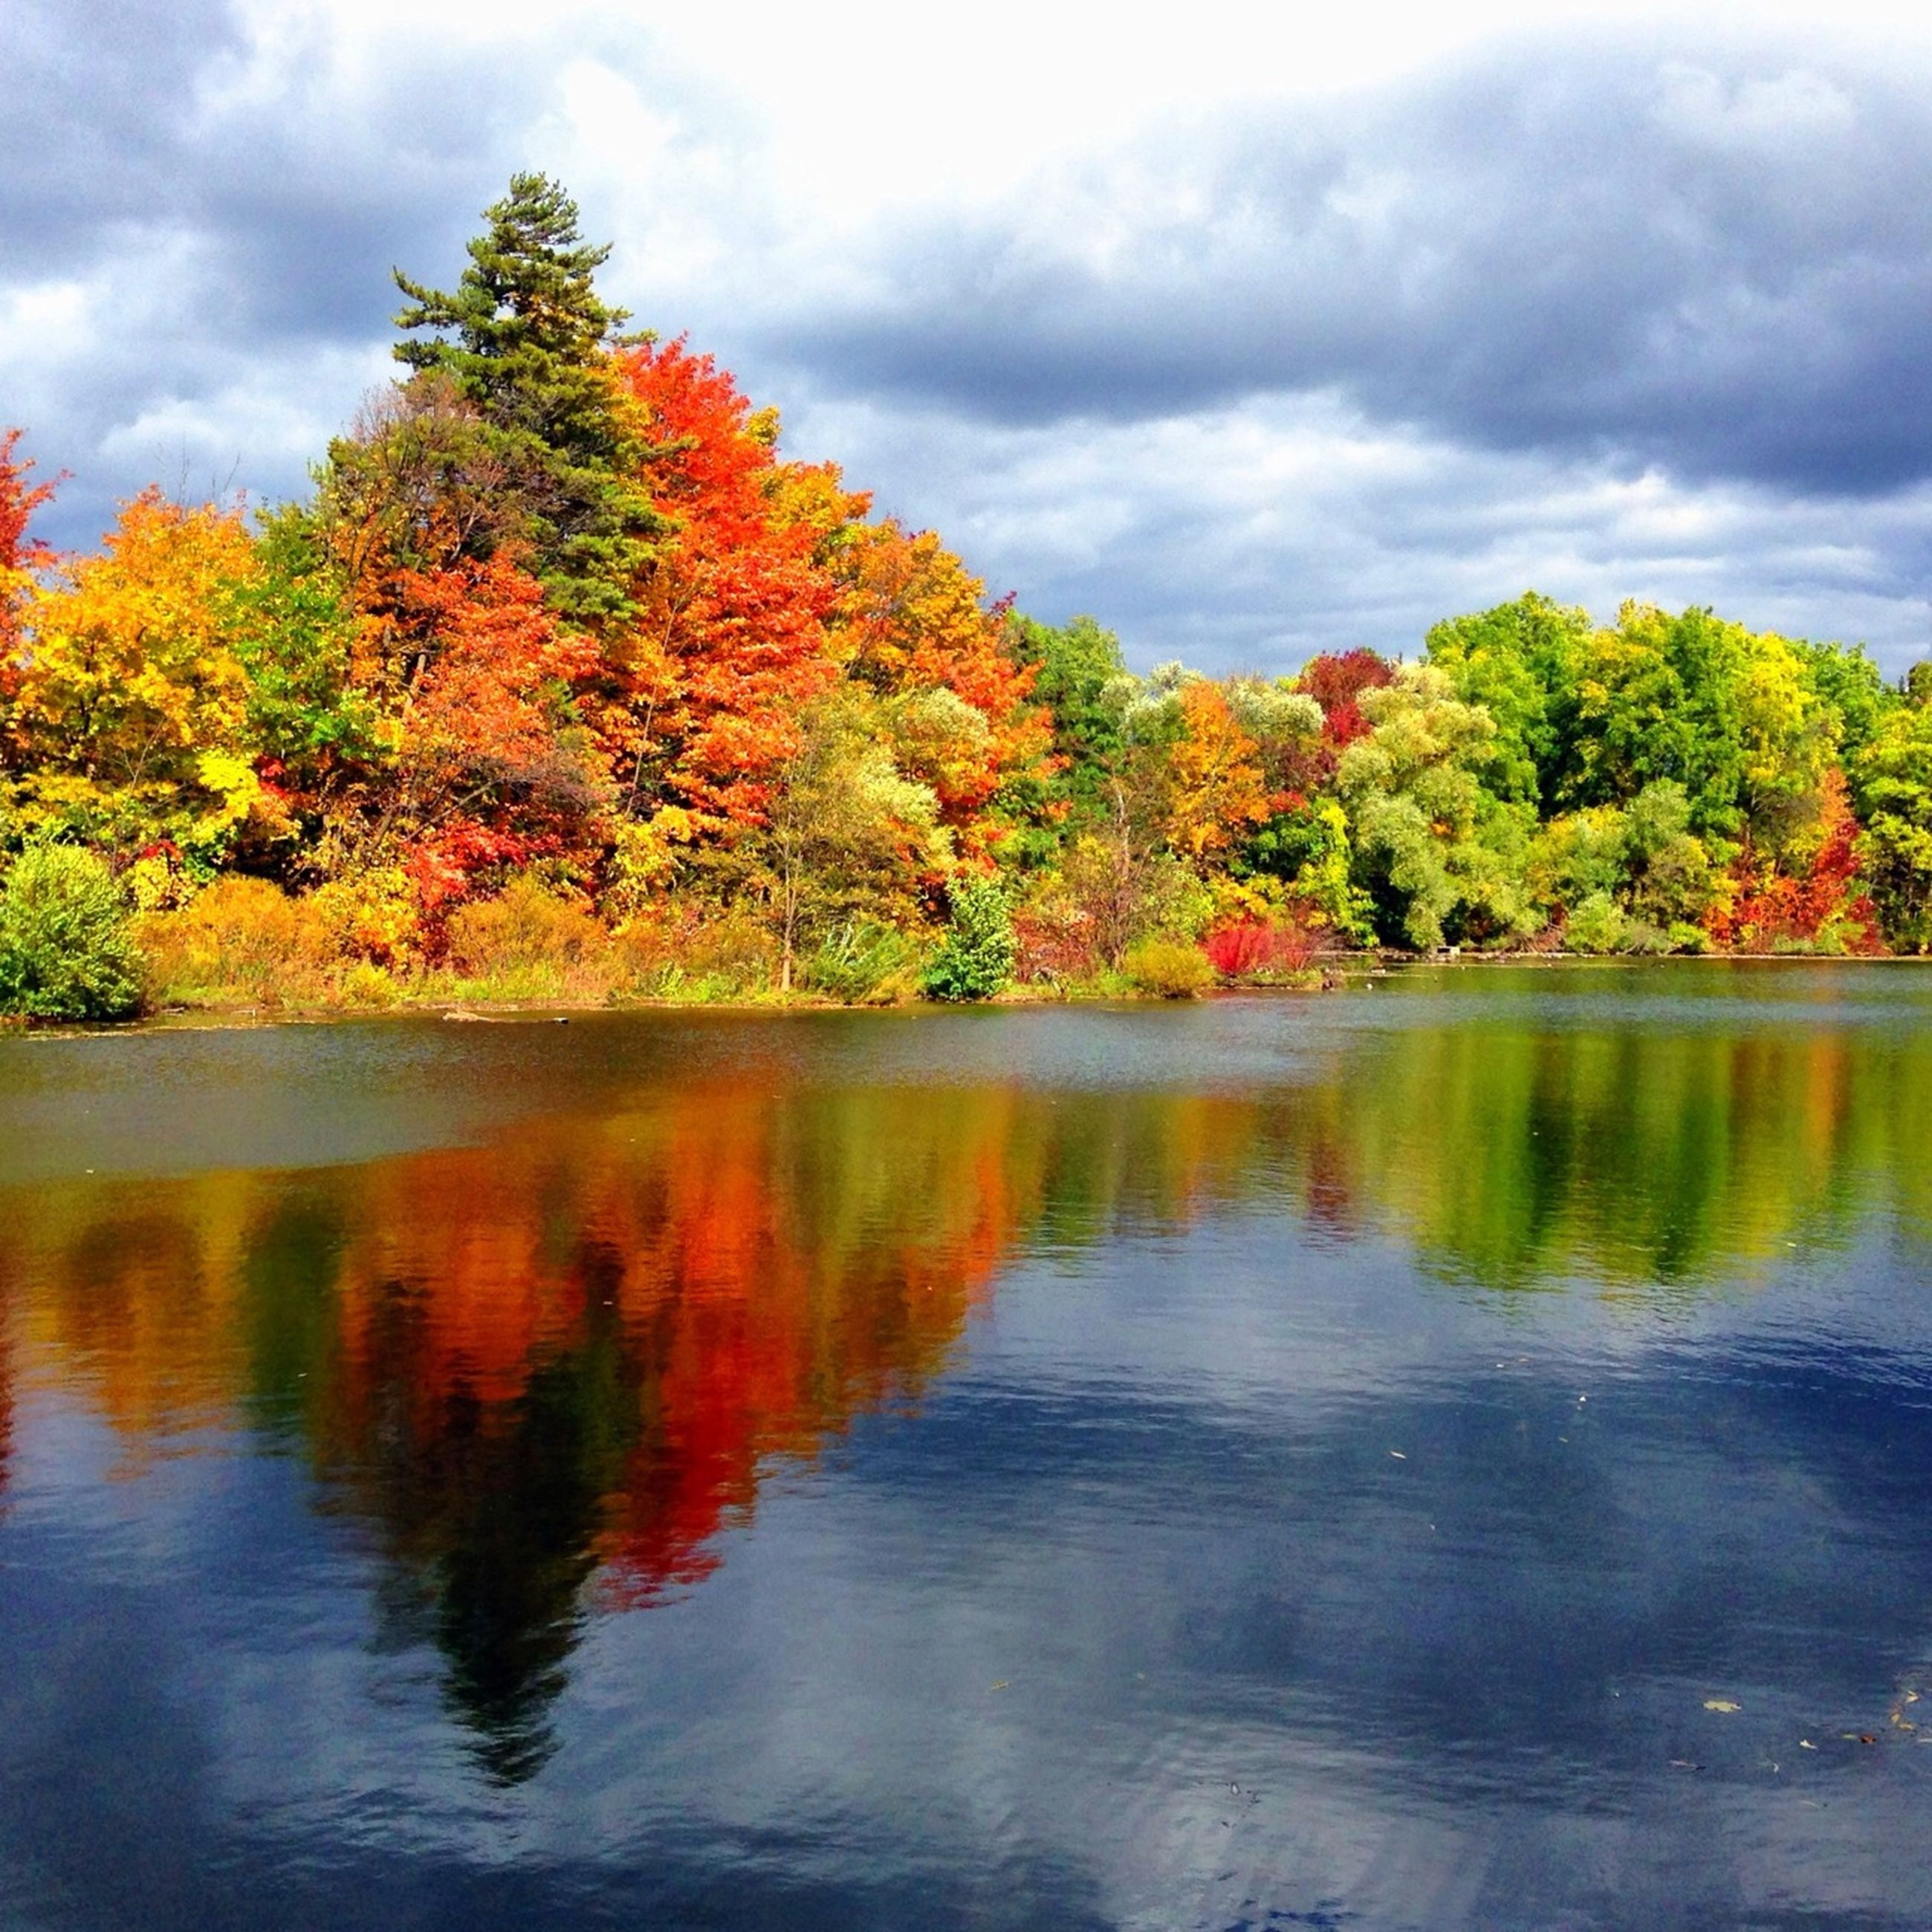 tree, water, sky, cloud - sky, tranquility, autumn, tranquil scene, lake, reflection, beauty in nature, change, scenics, waterfront, cloudy, nature, cloud, idyllic, season, growth, overcast